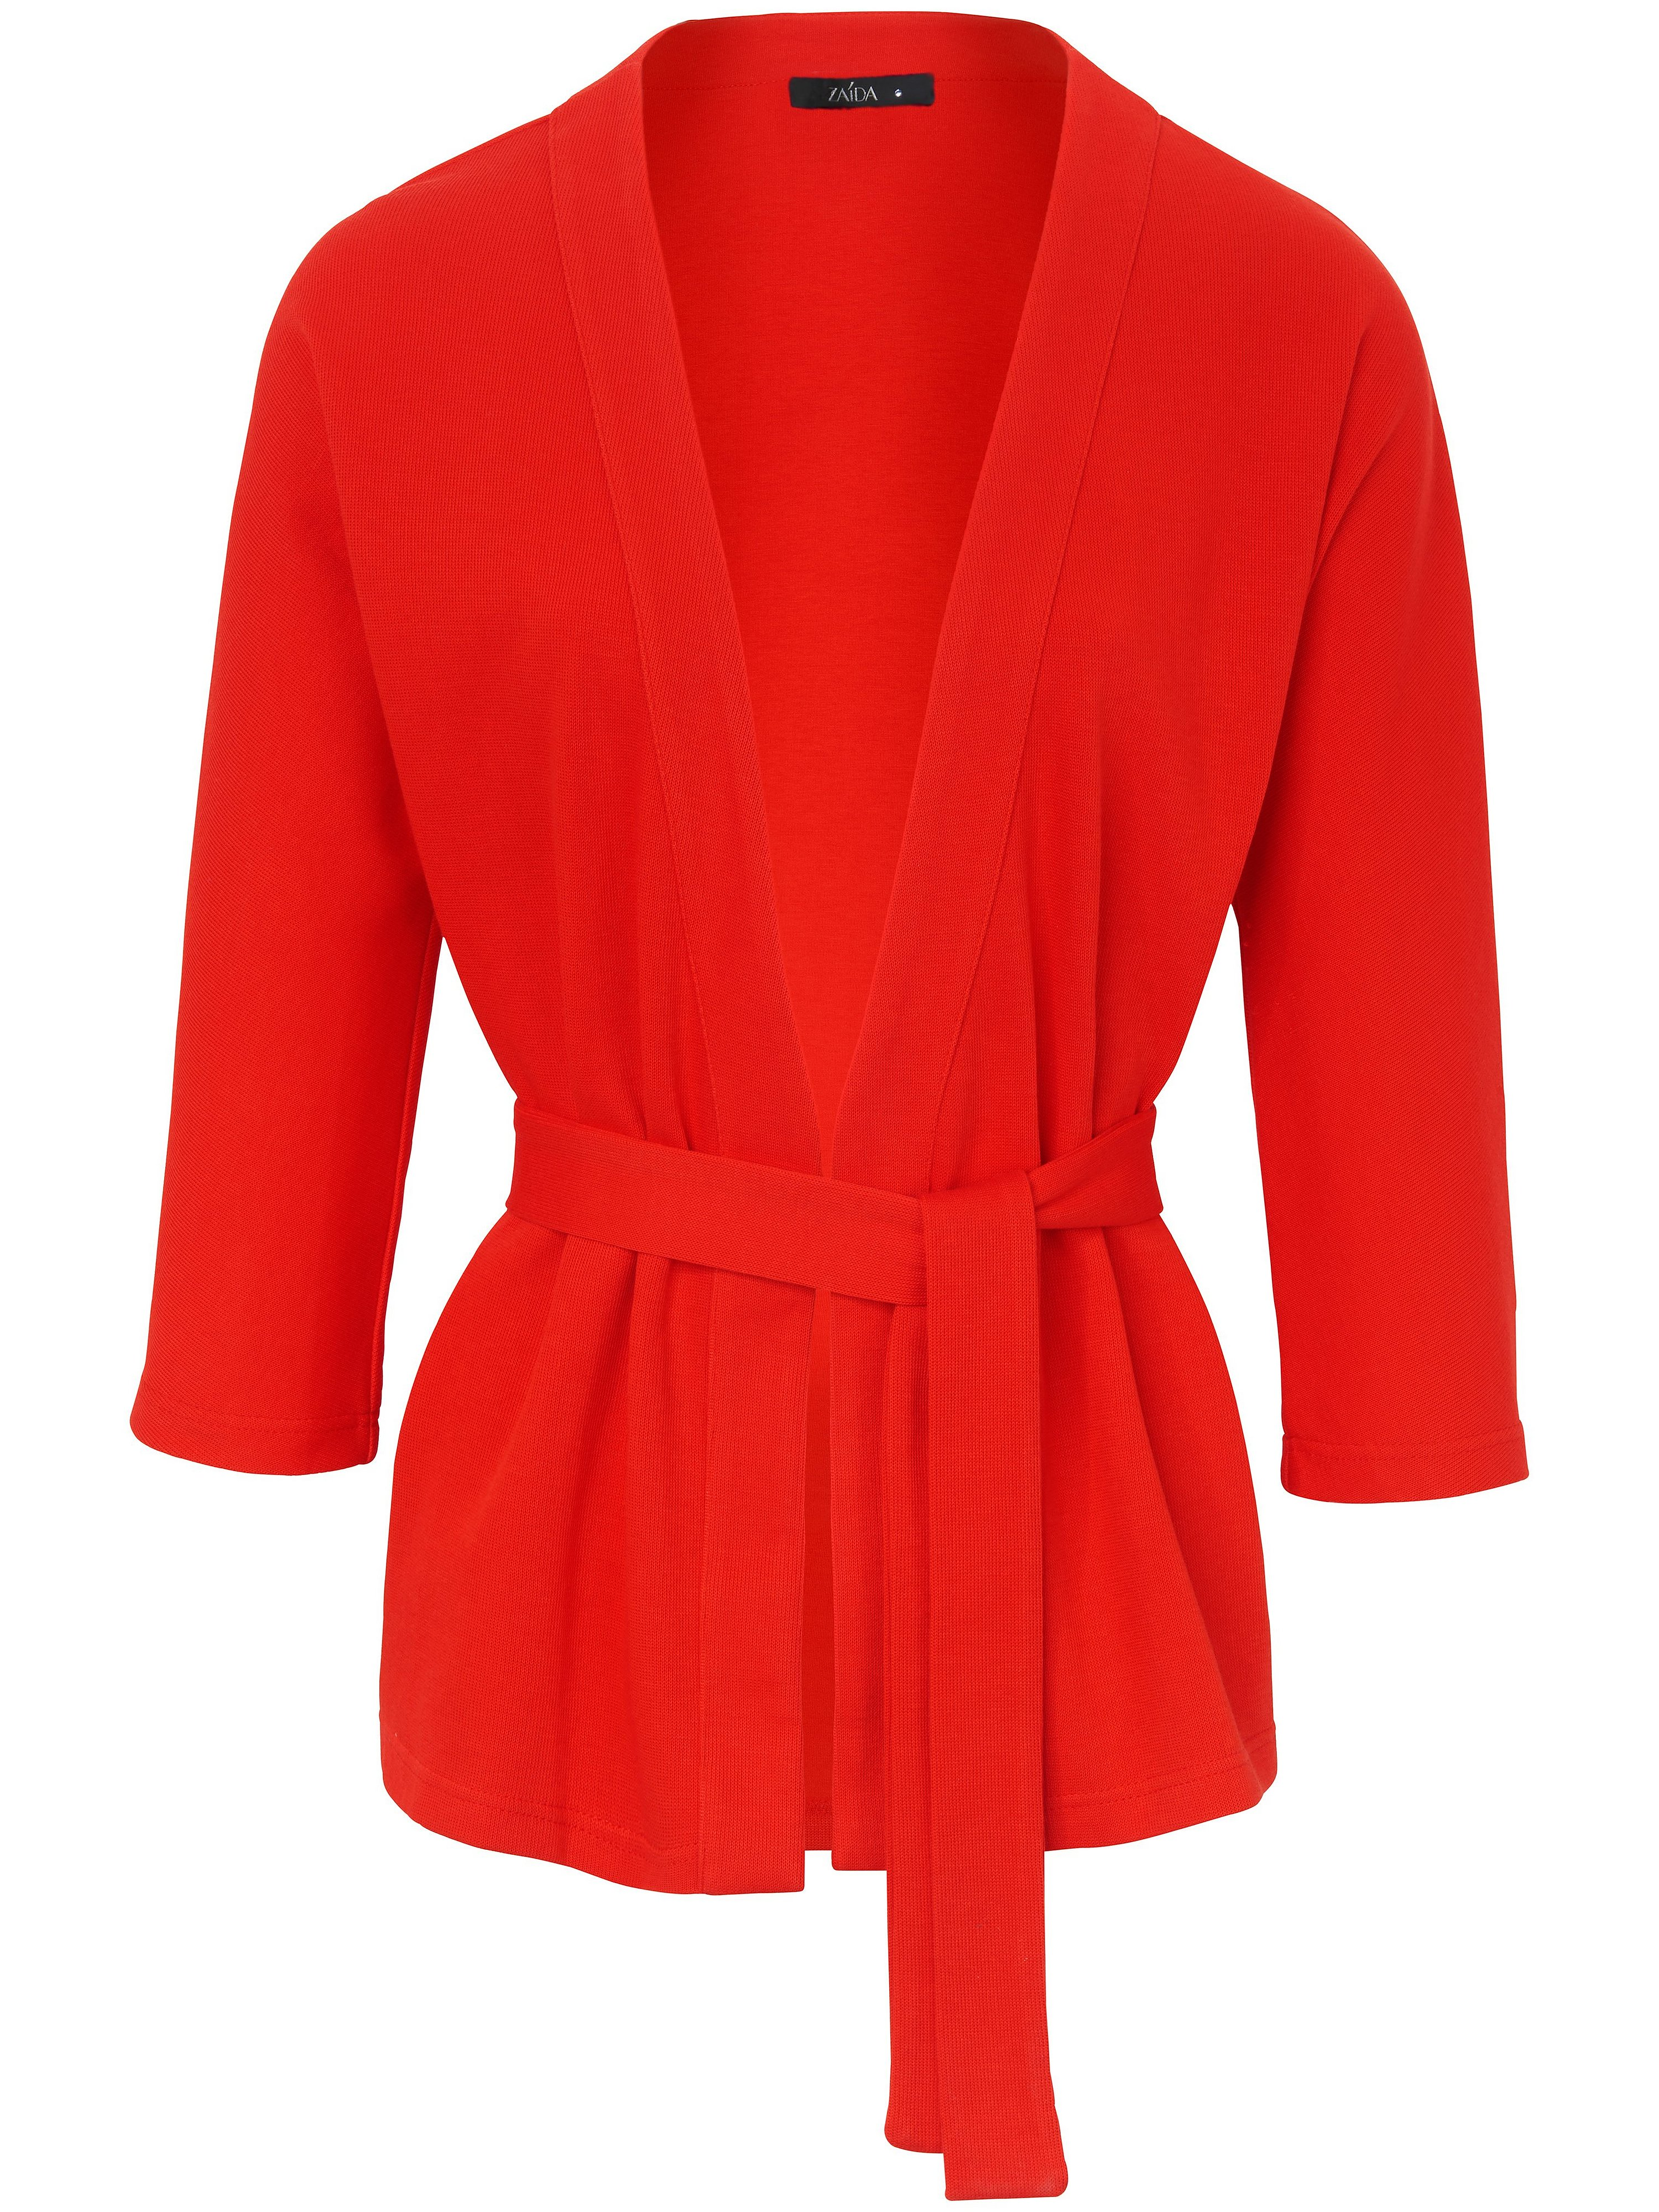 Le gilet manches 3/4  ZAIDA rouge taille 48